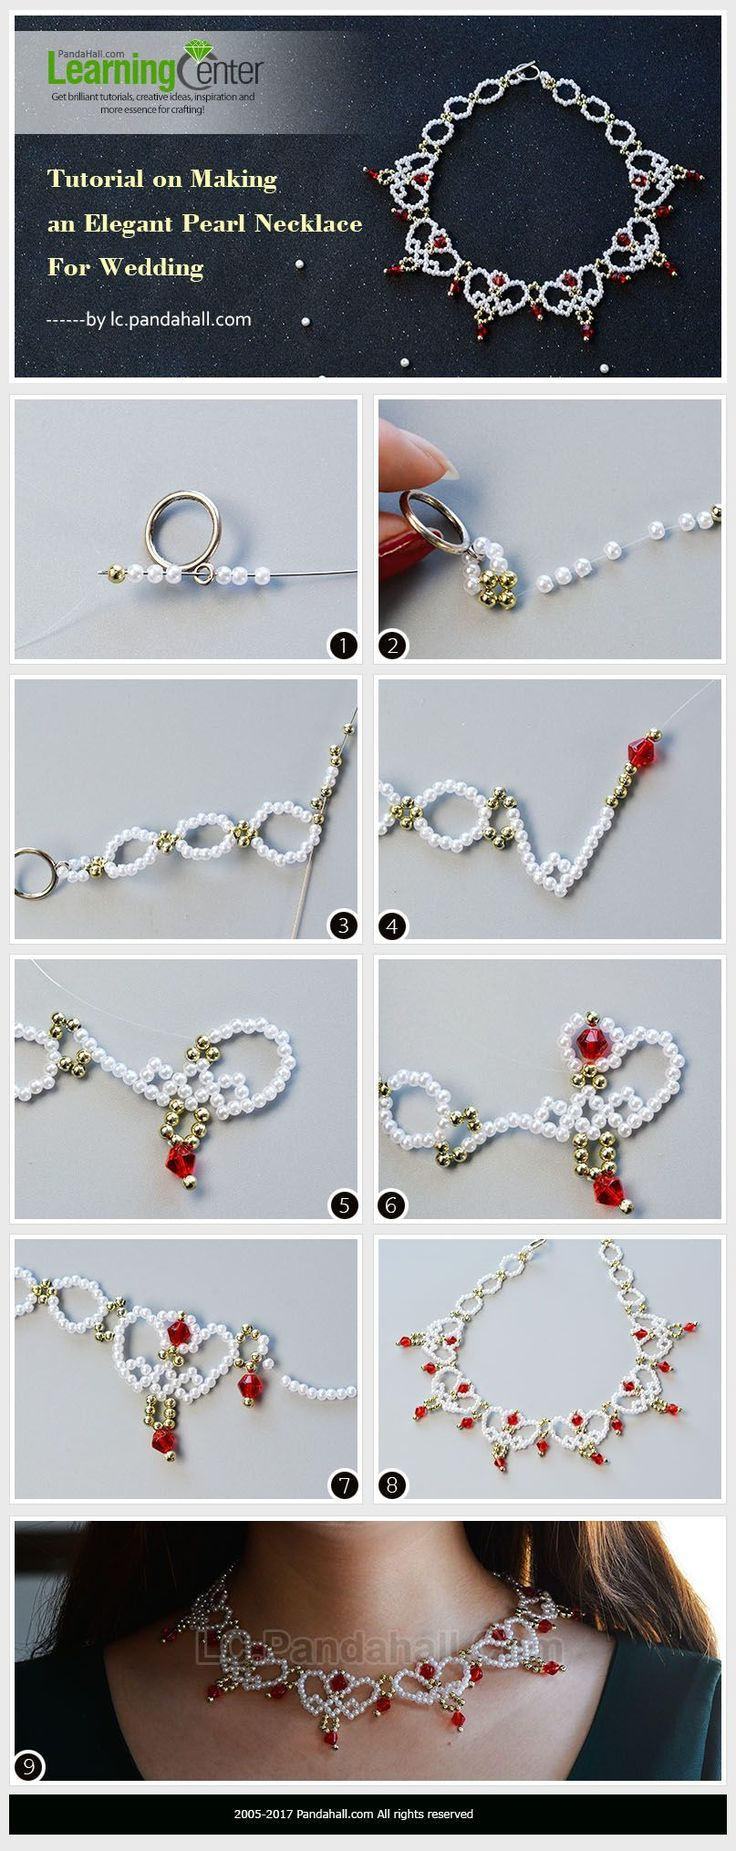 Tutorial on Making an Elegant Pearl Necklace For Wedding